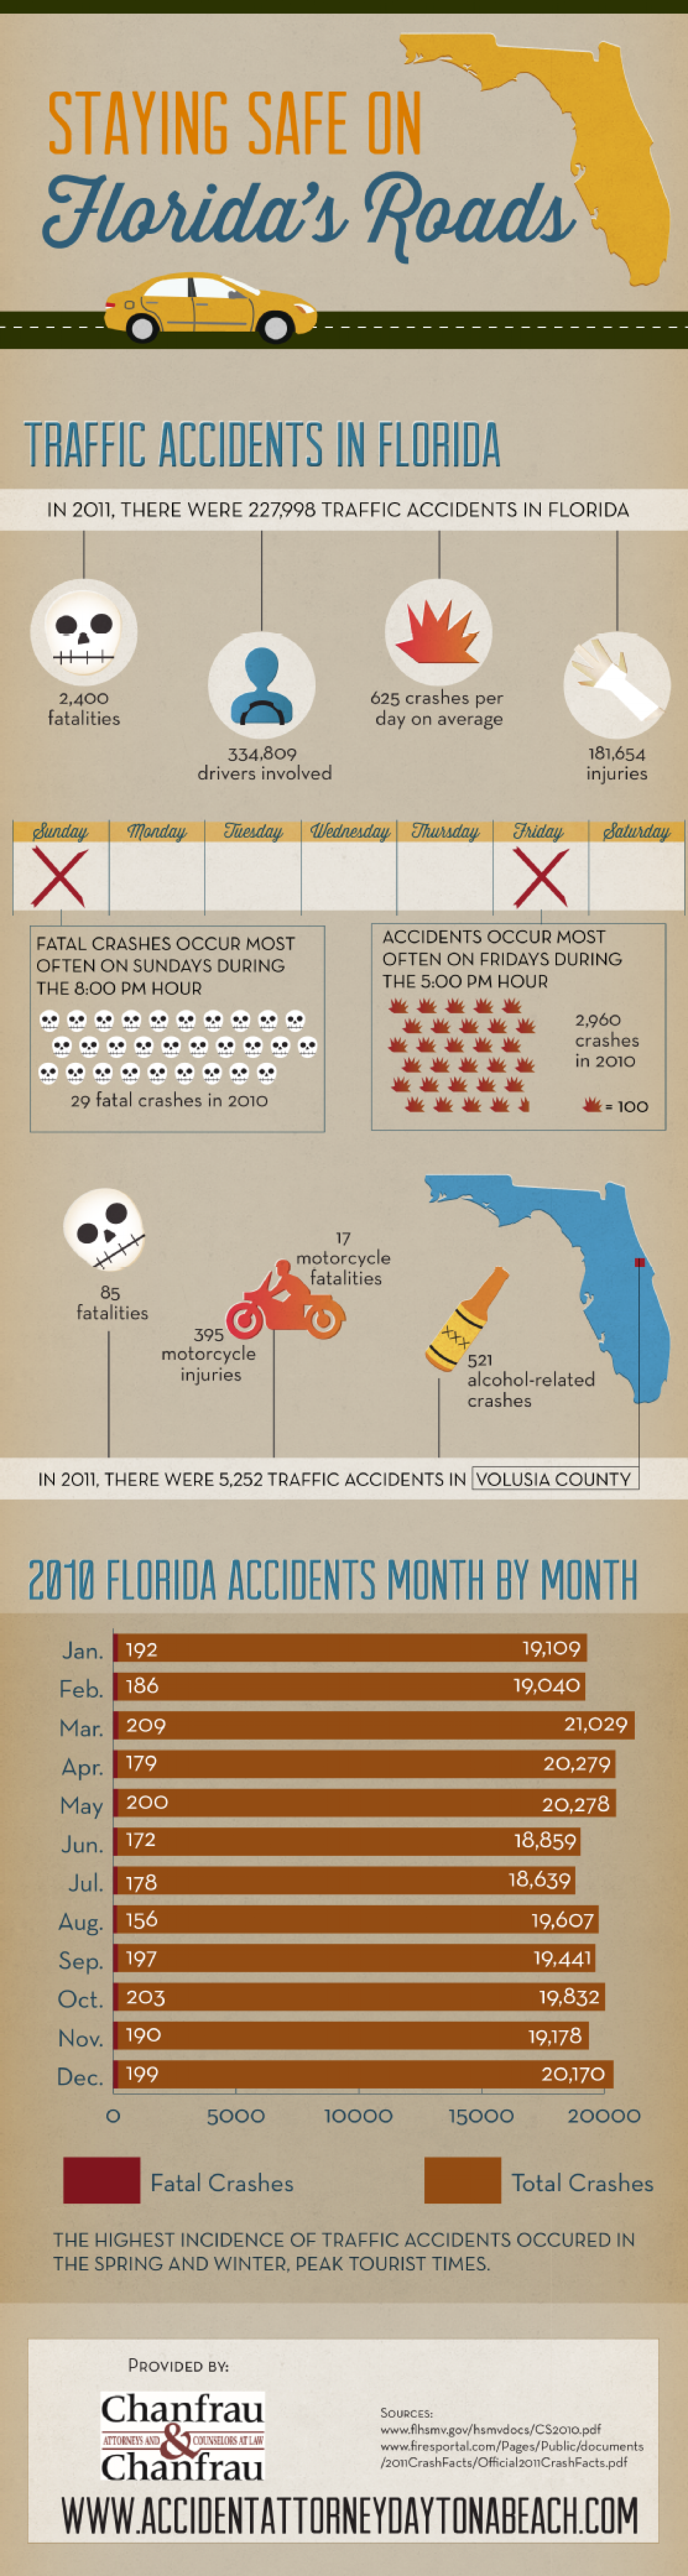 Staying Safe on Florida's Roads Infographic